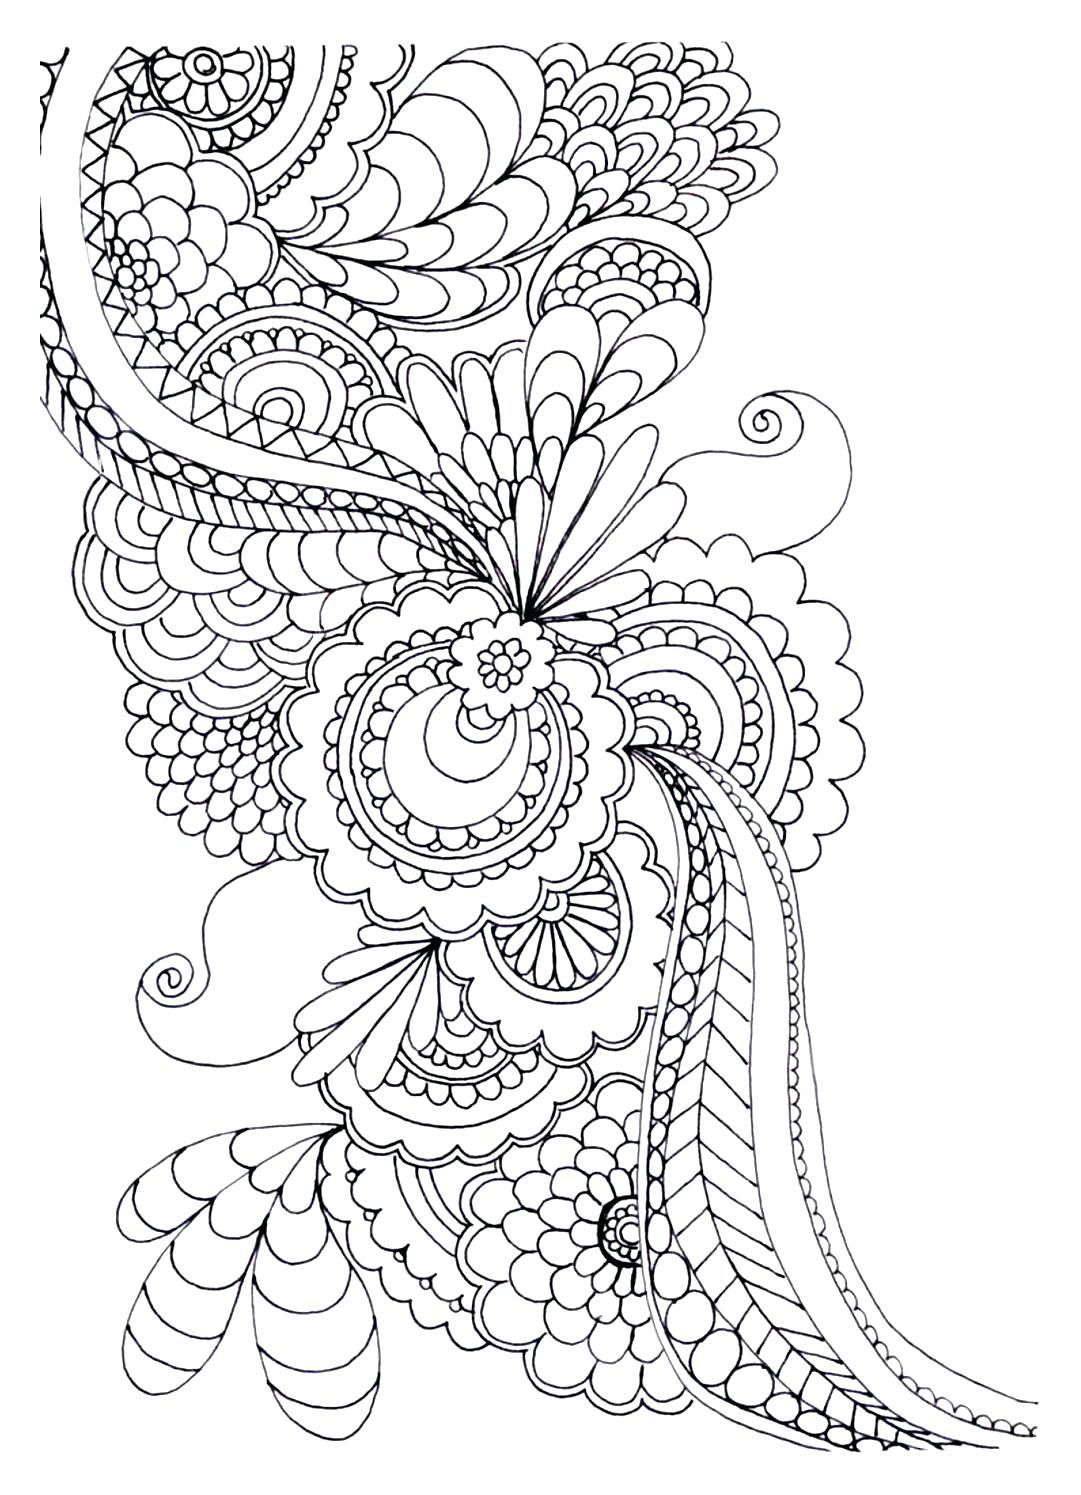 1081x1495 Get Creative With These Abstract Adult Colouring Pages Which Are